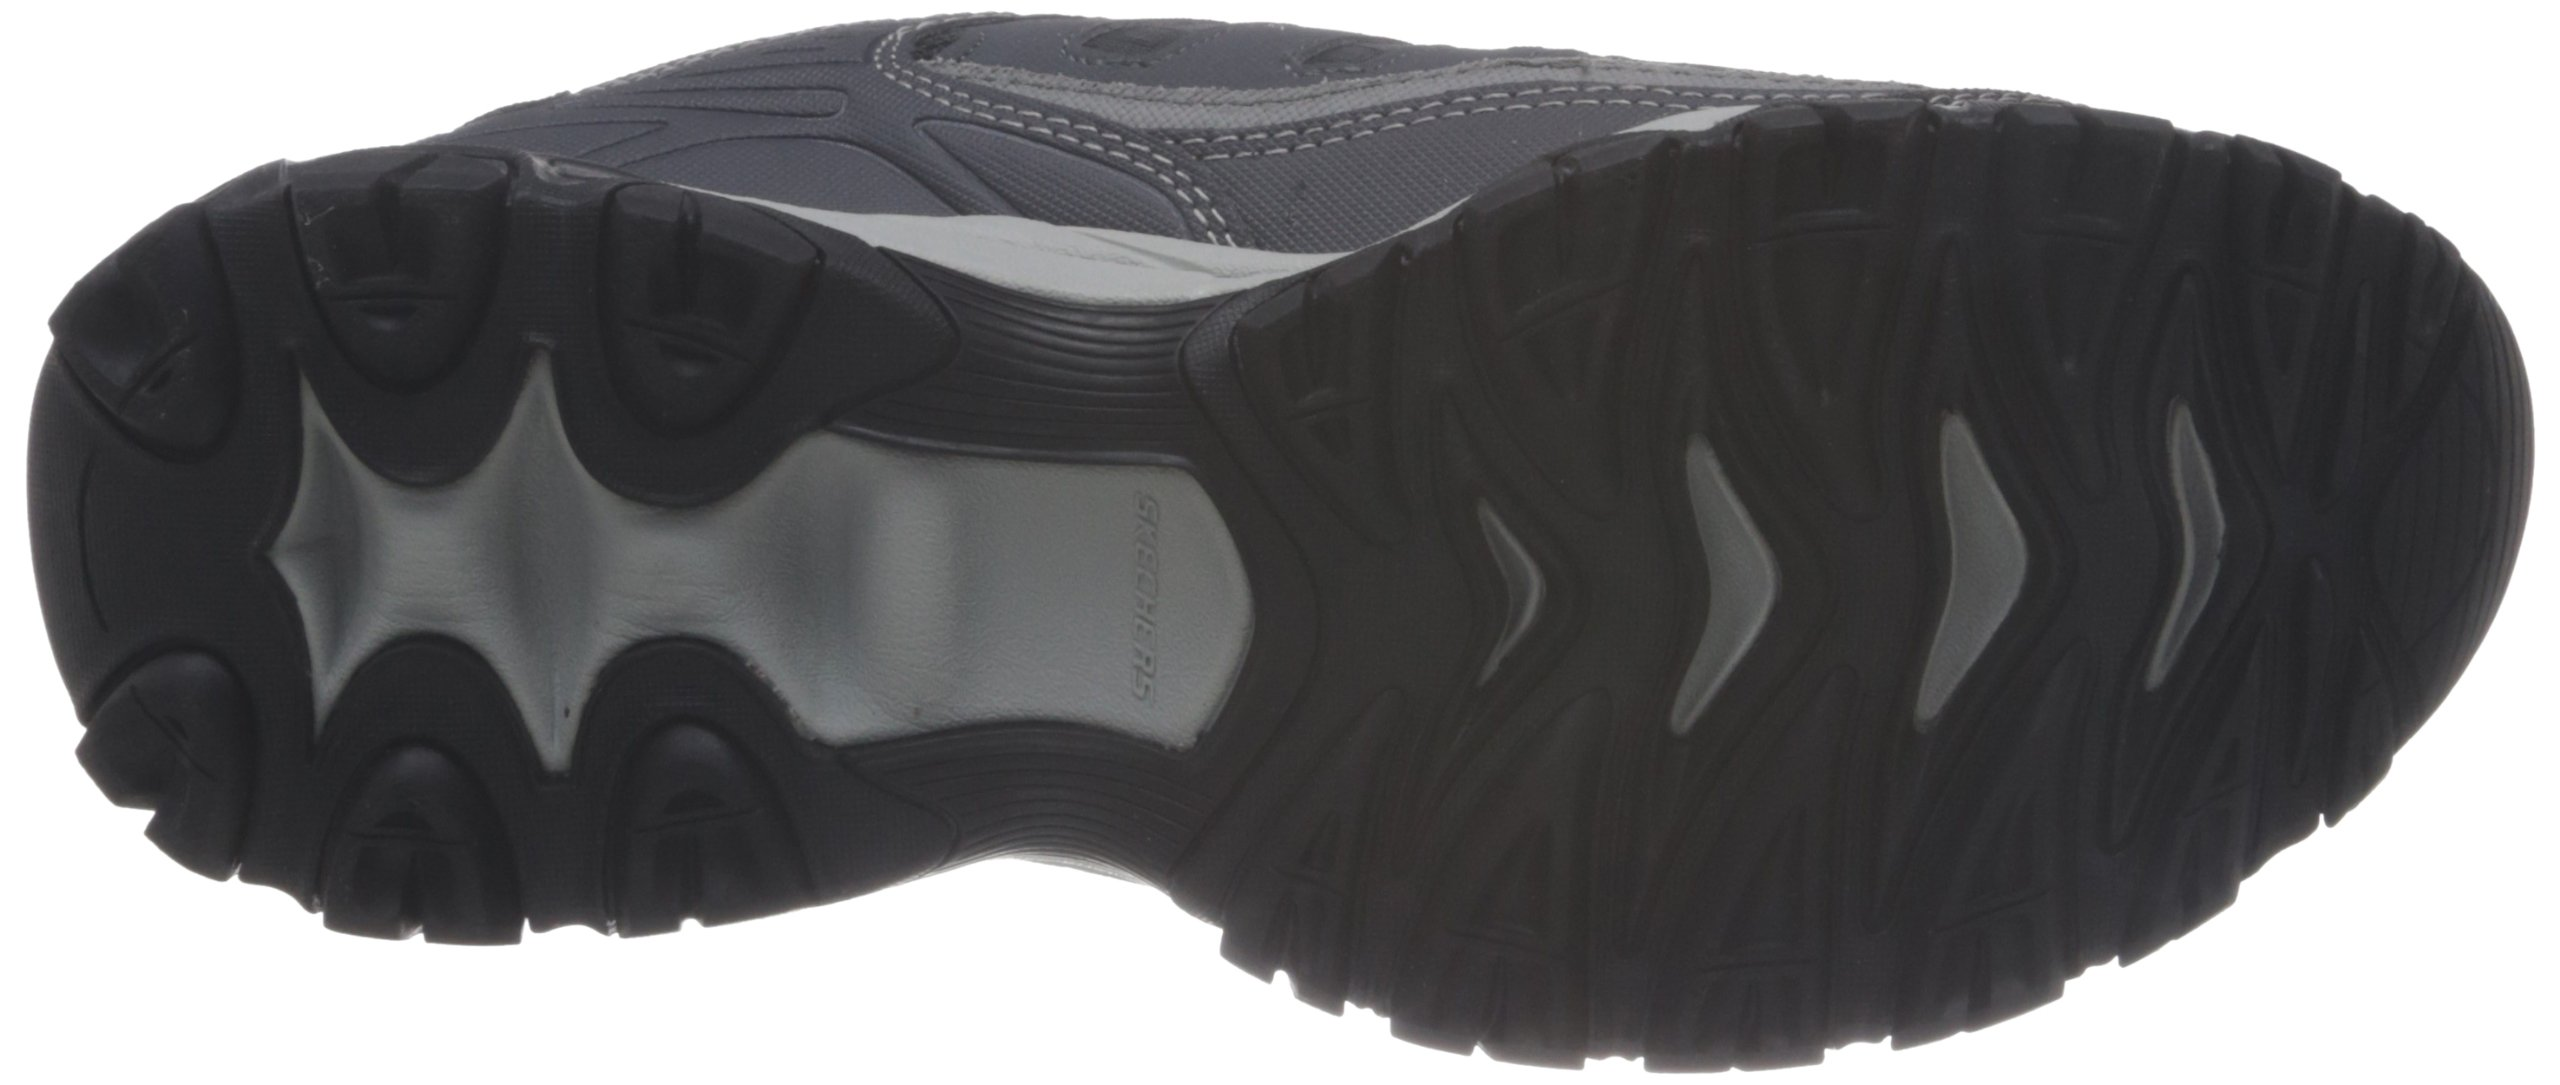 Skechers Sport Men's Afterburn Memory Foam Lace-Up Sneaker, Charcoal, 7 M US by Skechers (Image #3)